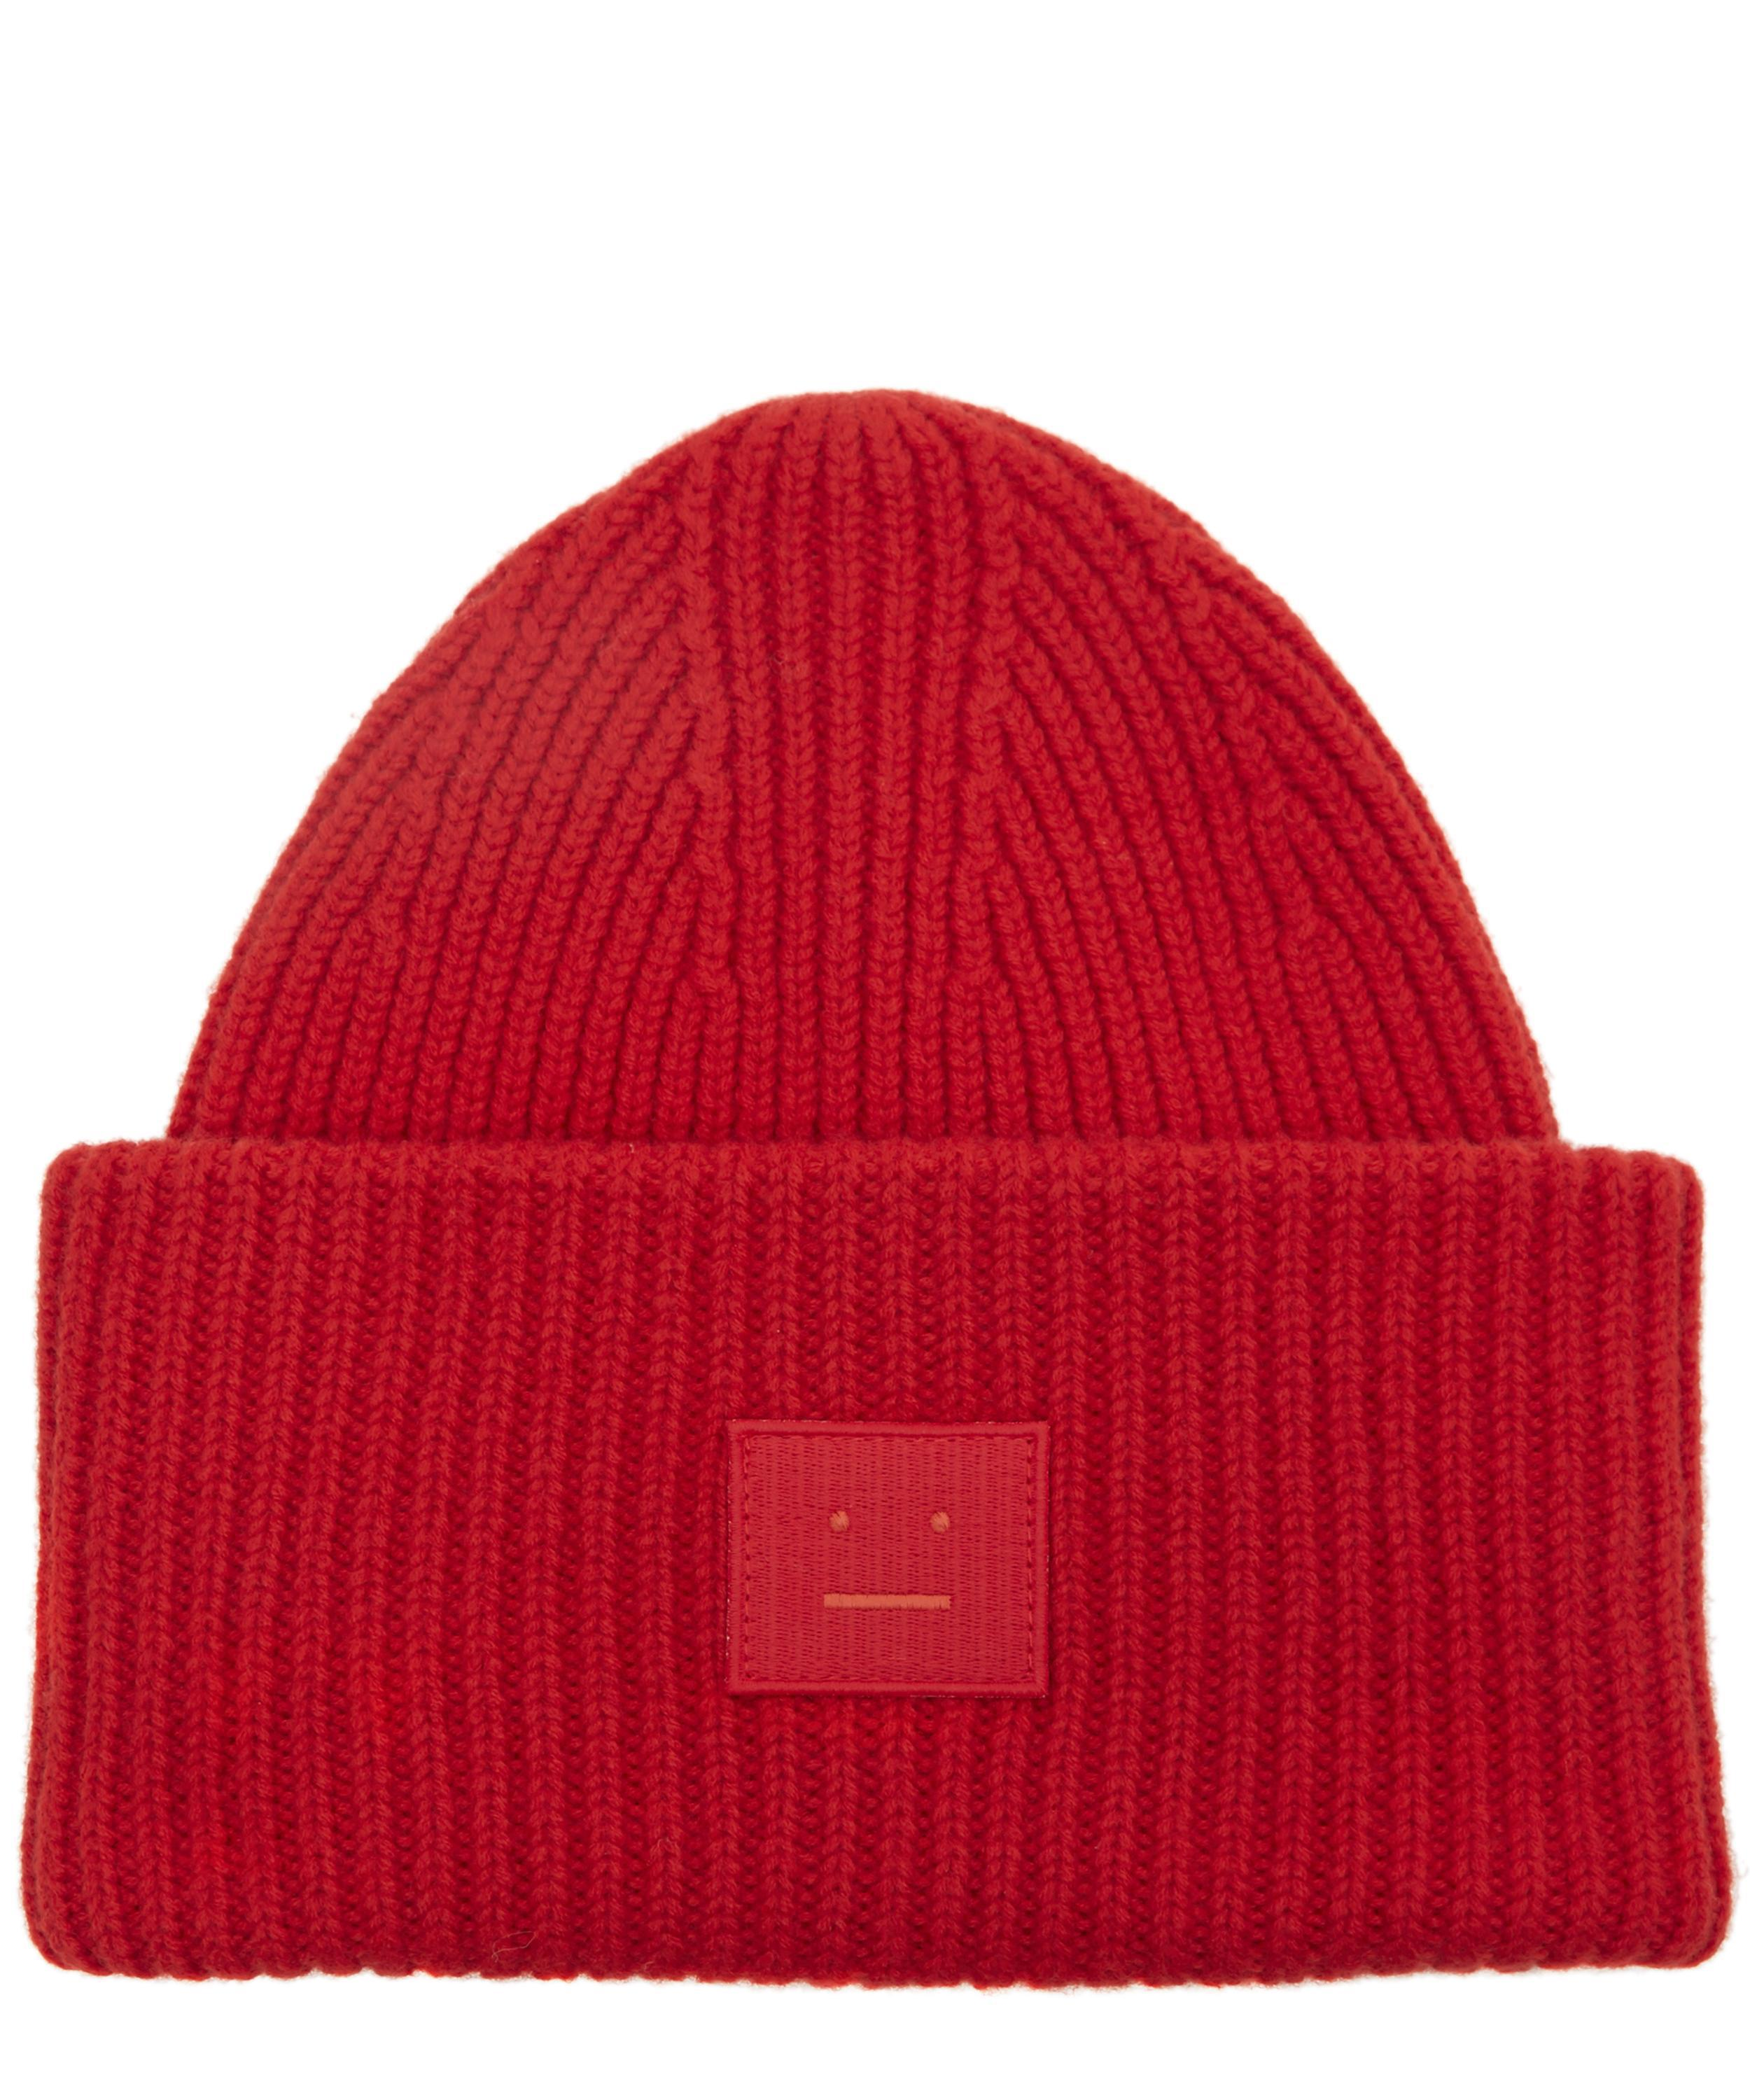 Pansy Face Beanie in Red Acne Studios QbR47JjQK